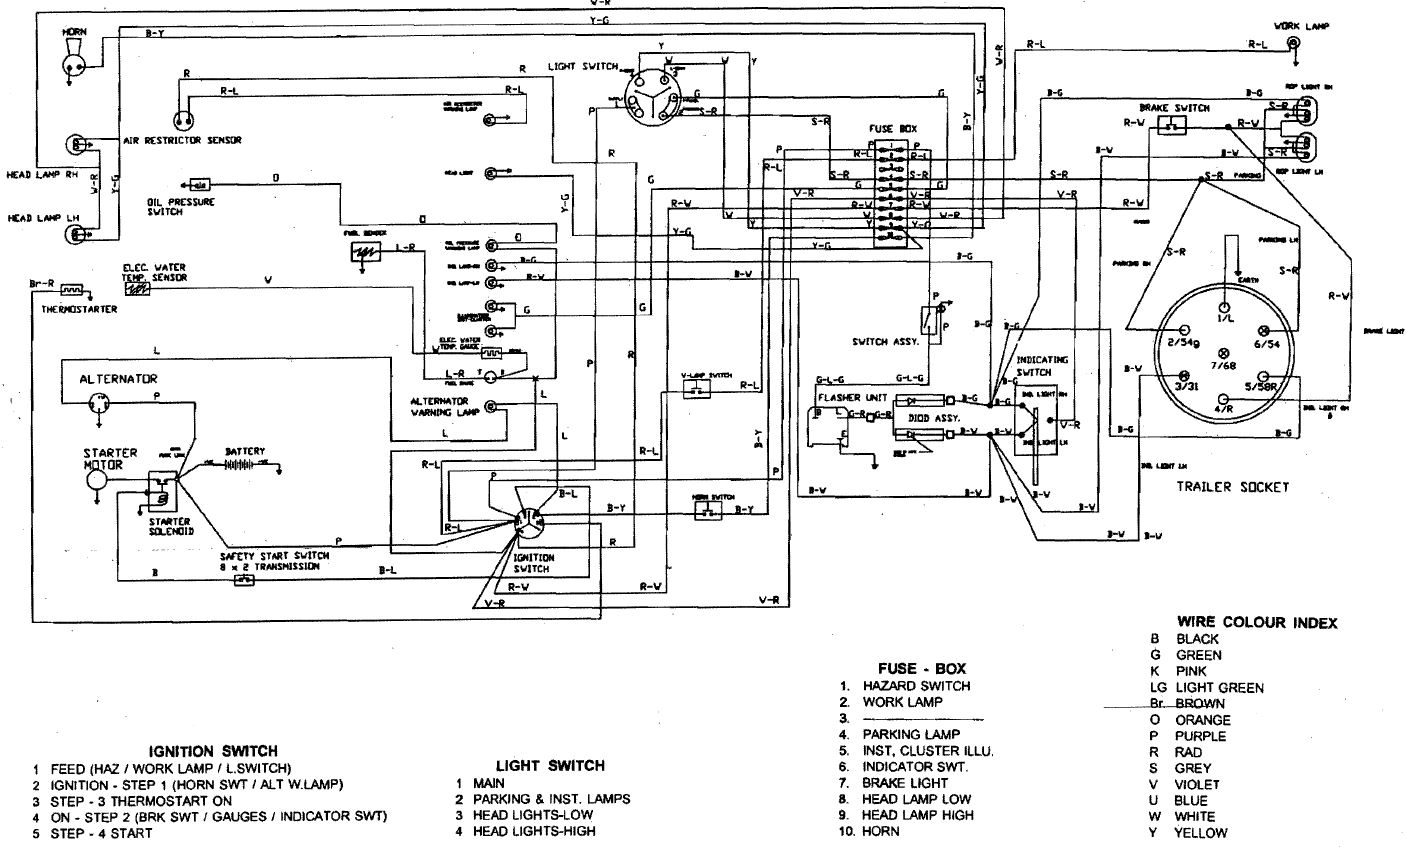 20158463319_b82d524c3d_o ignition switch wiring diagram Case IH 430 H Starter Wiring Diagrams at n-0.co